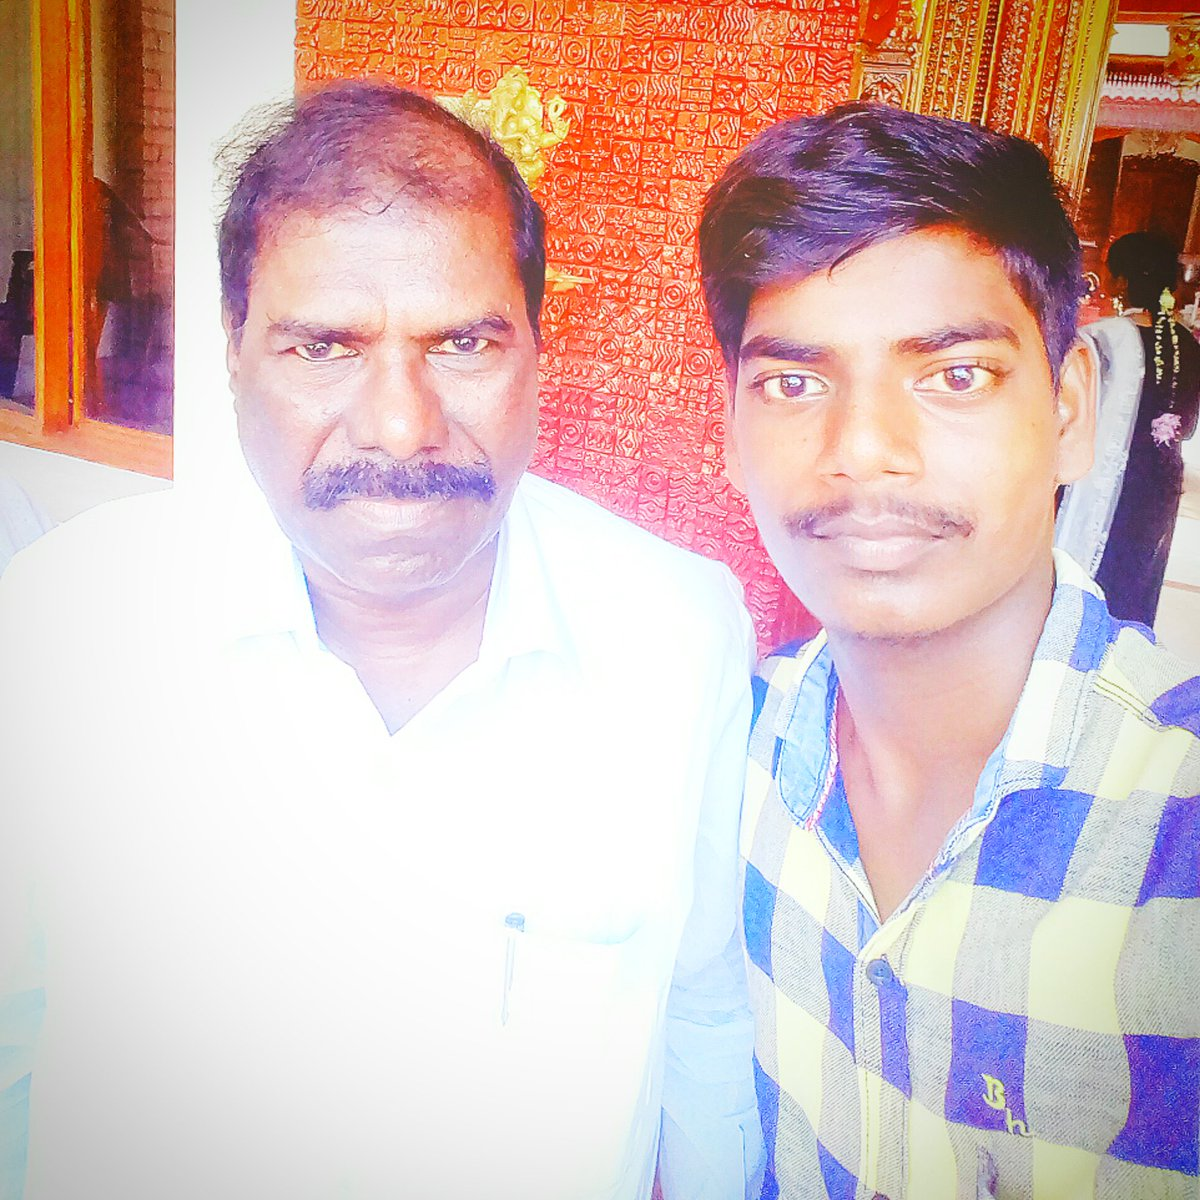 💐🎂Wish u many more happy returns of the day @PmkGkm  sir....💐🎂🎂💐💐🎂   #PMKPartyLeader  #PattaliMakkalKatchi  #Pmk   #HumblePerson  #SmillingPerson